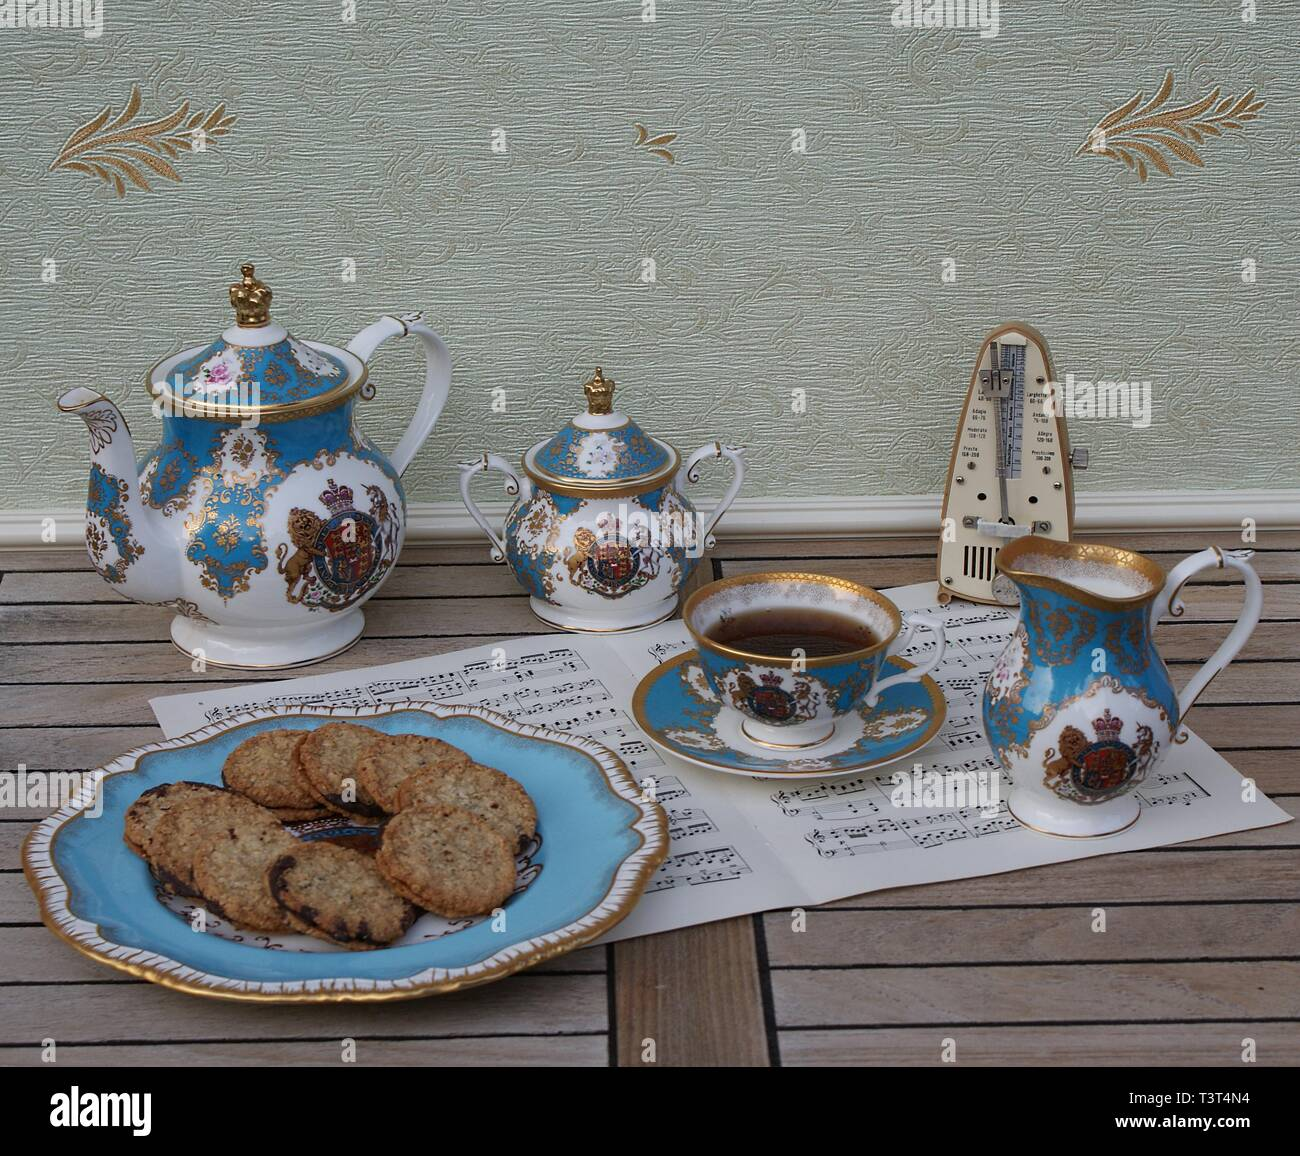 English teacup with saucer, teapot, sugar bowl, cream jug and a cake plate with cookies and a metronome for music on a sheet of music - Stock Image